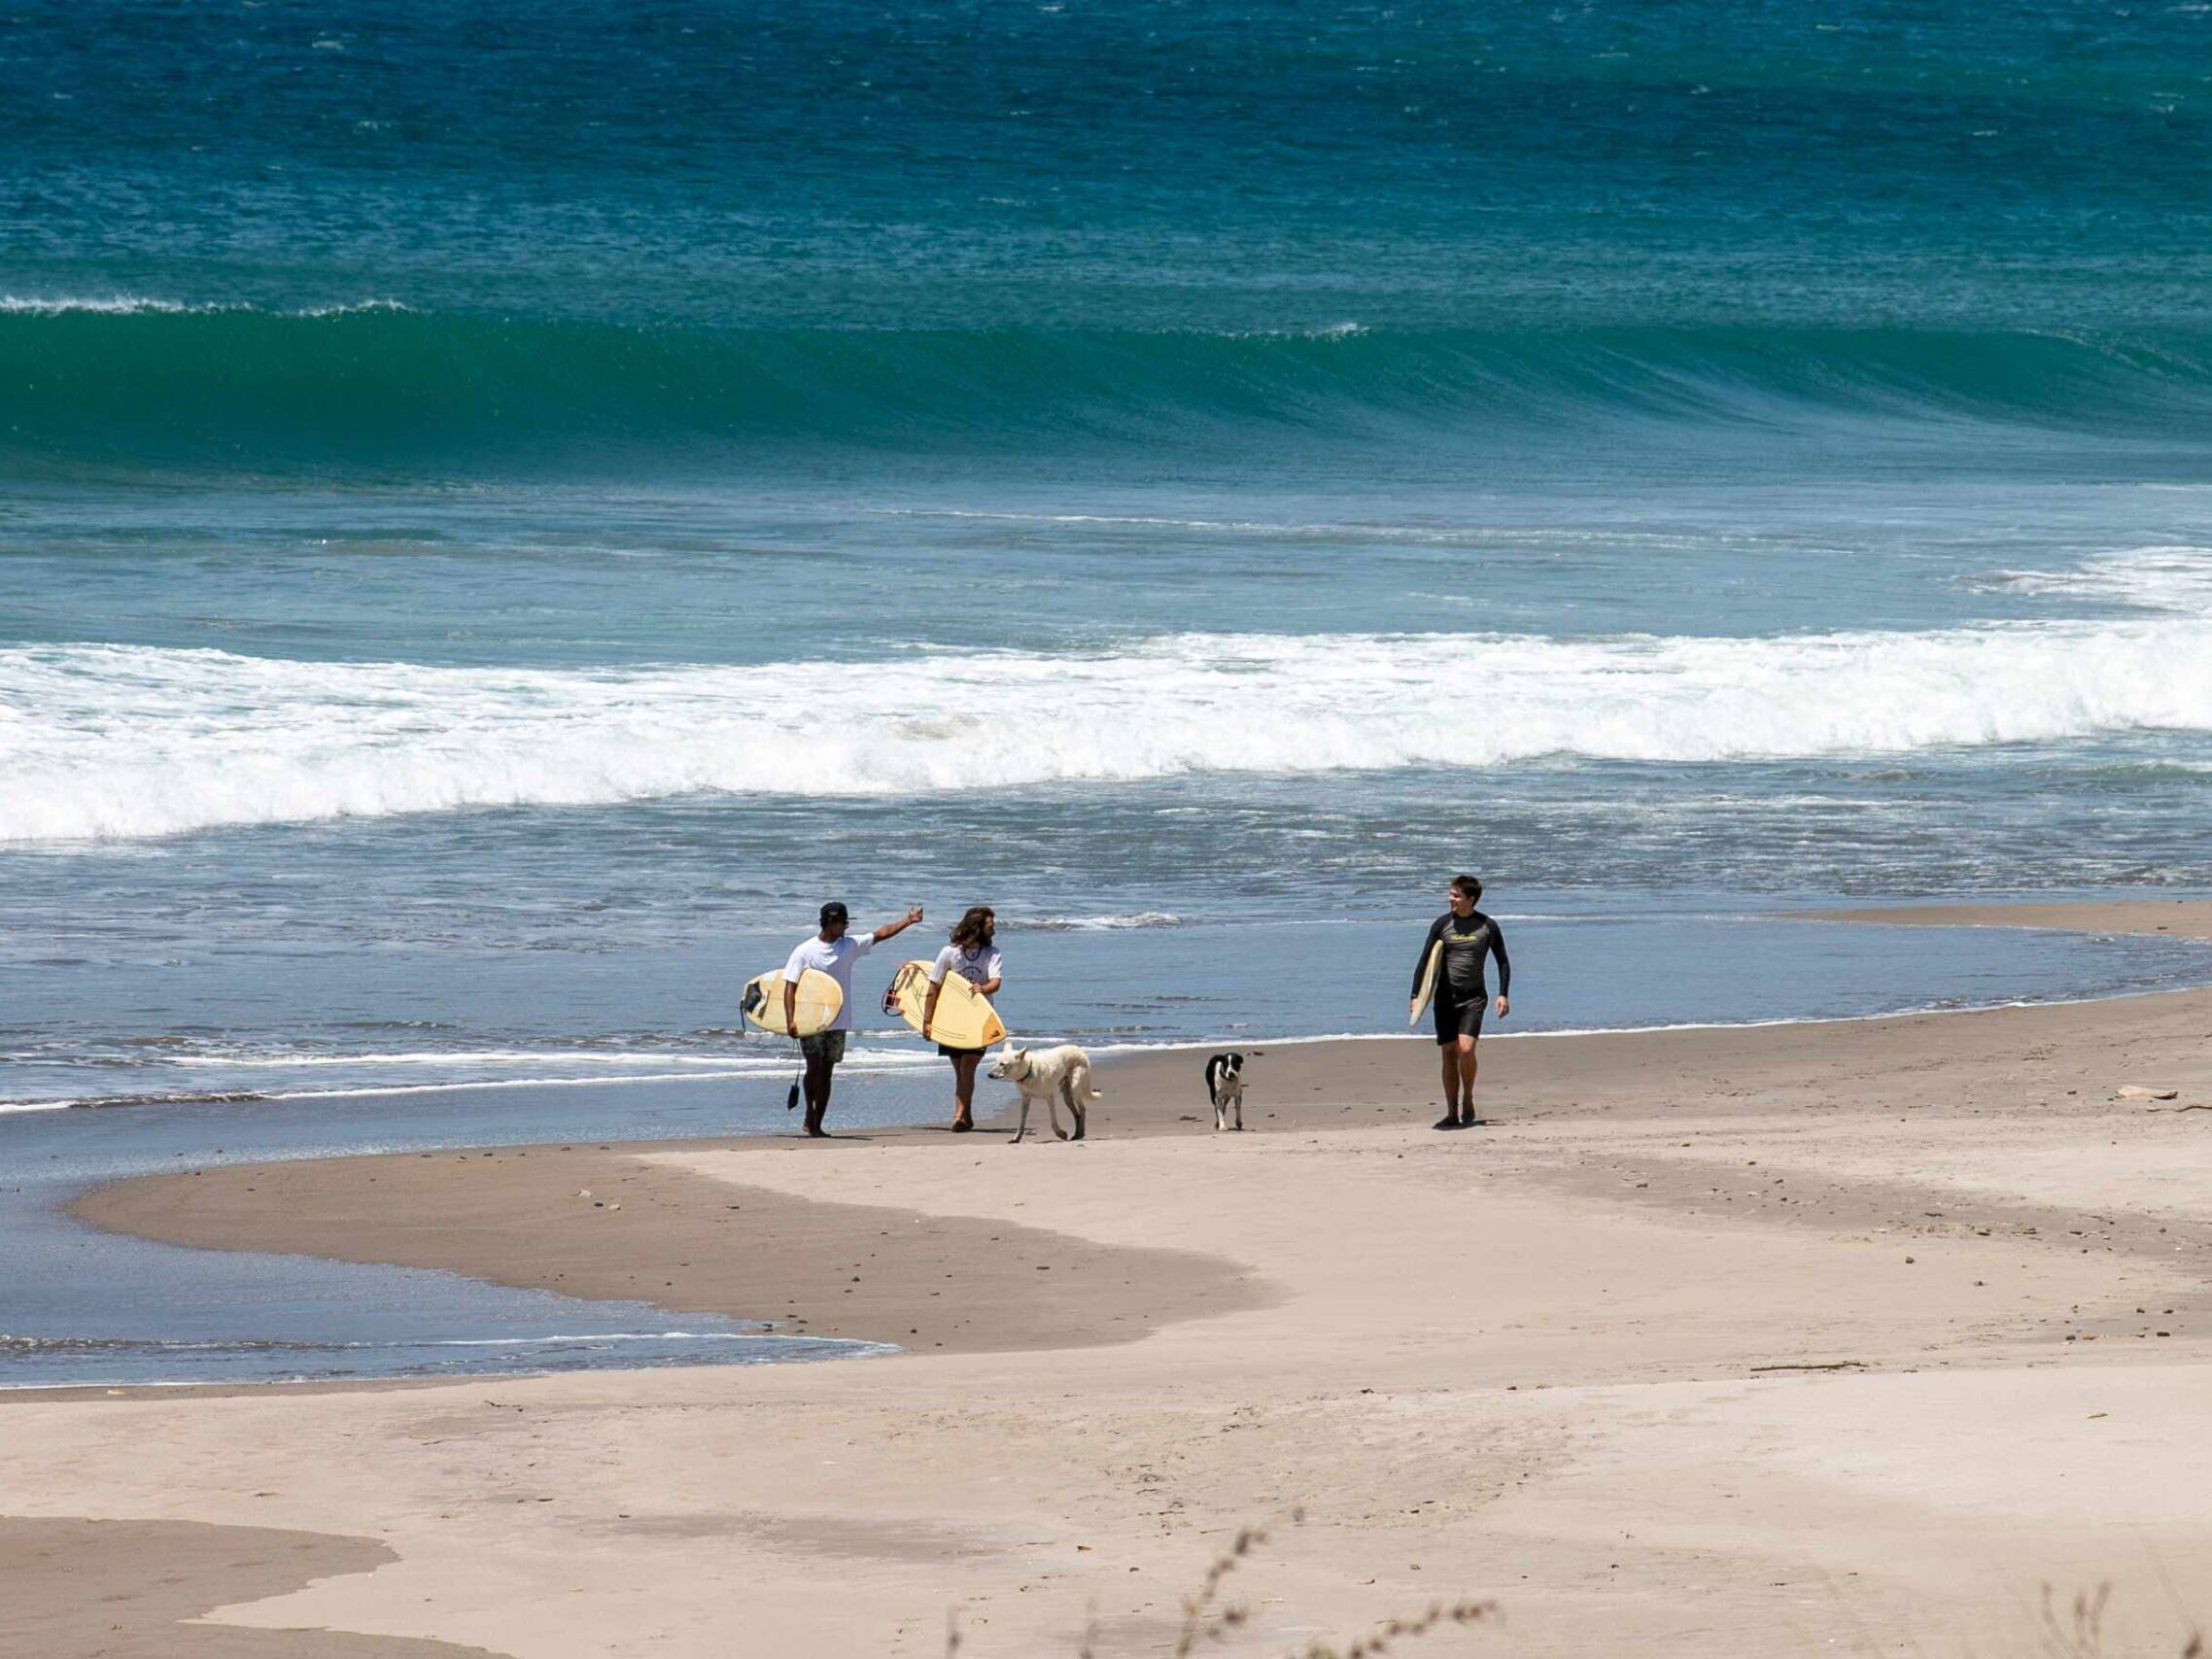 Surfers at Popoyo beach in Nicaragua